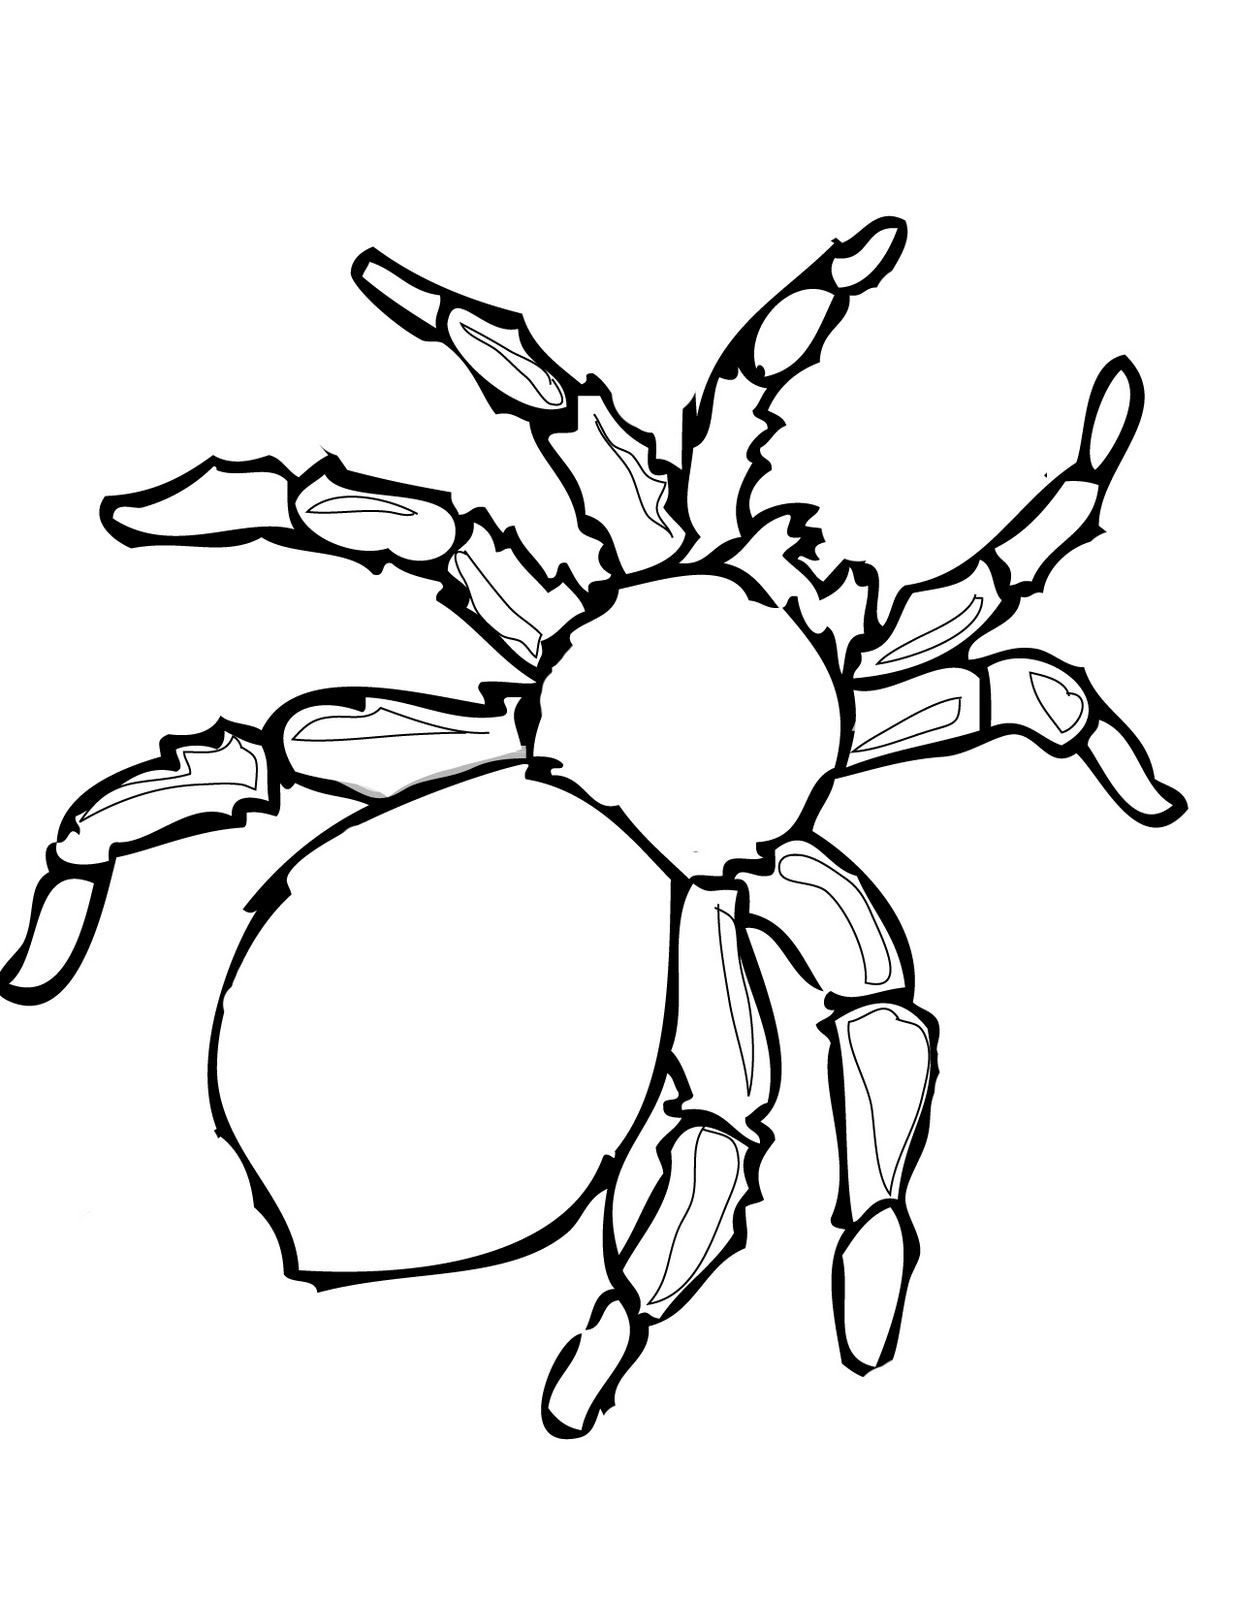 Soft image throughout printable spider